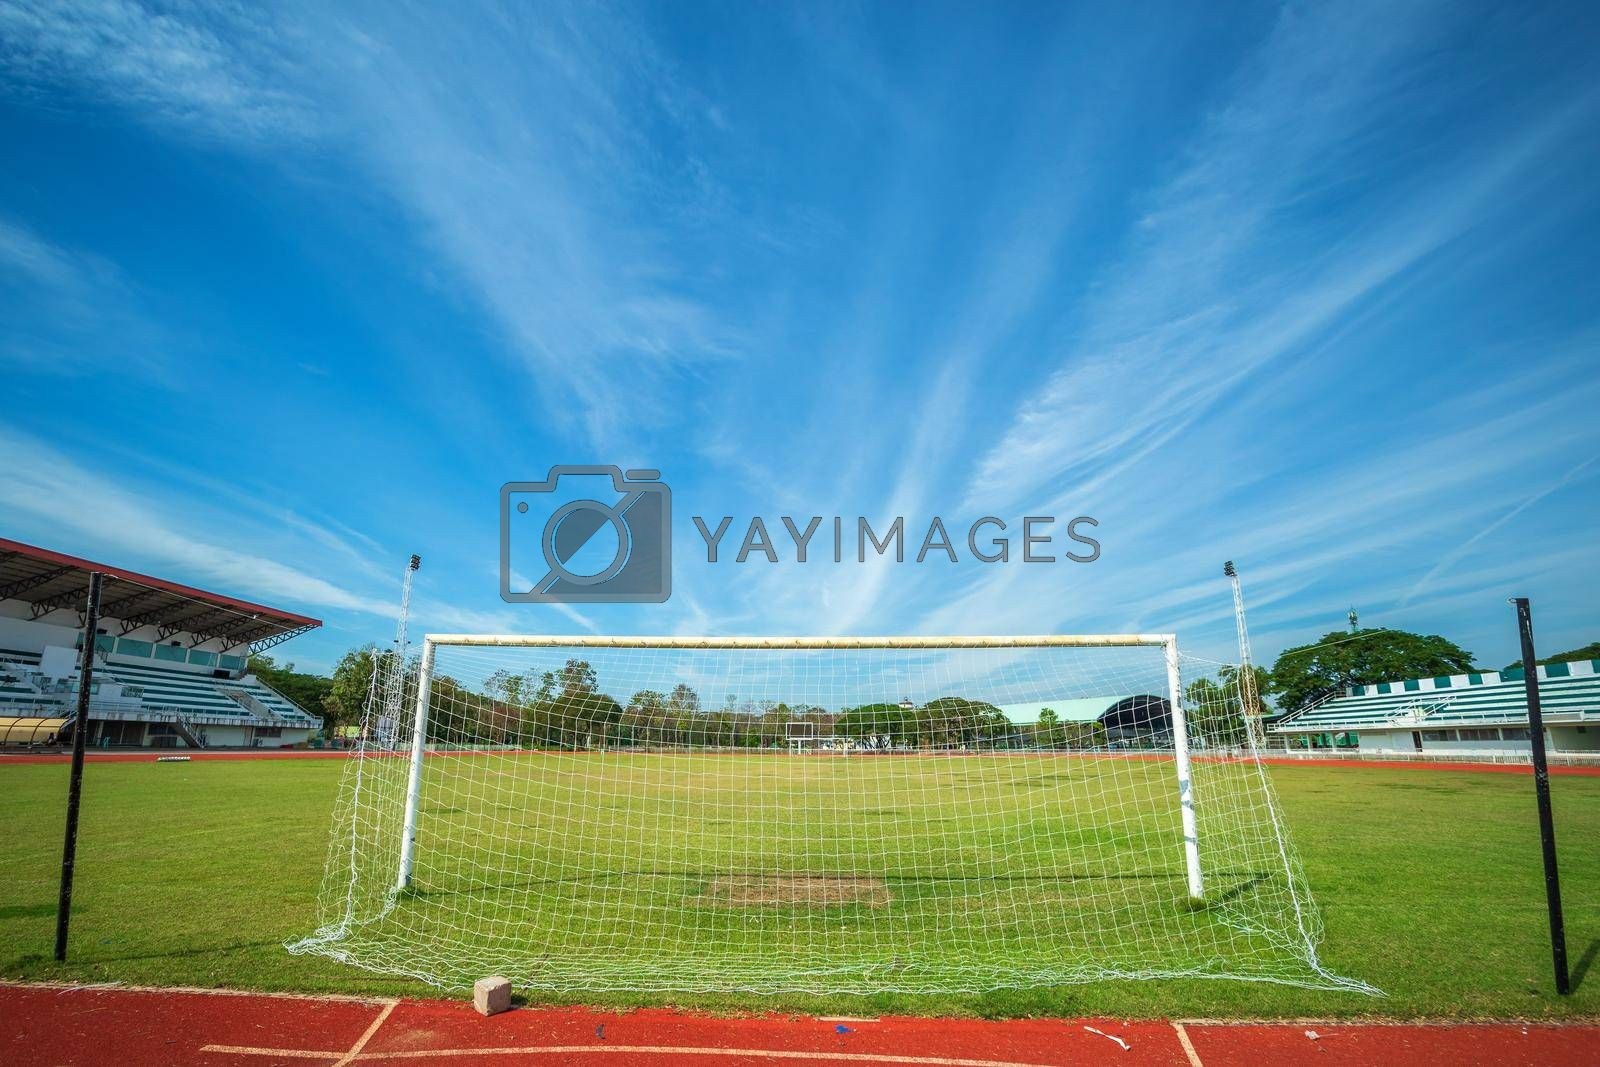 Royalty free image of Stadium Soccer goal or football goal at of stadium with blue sky background. by tinapob2534